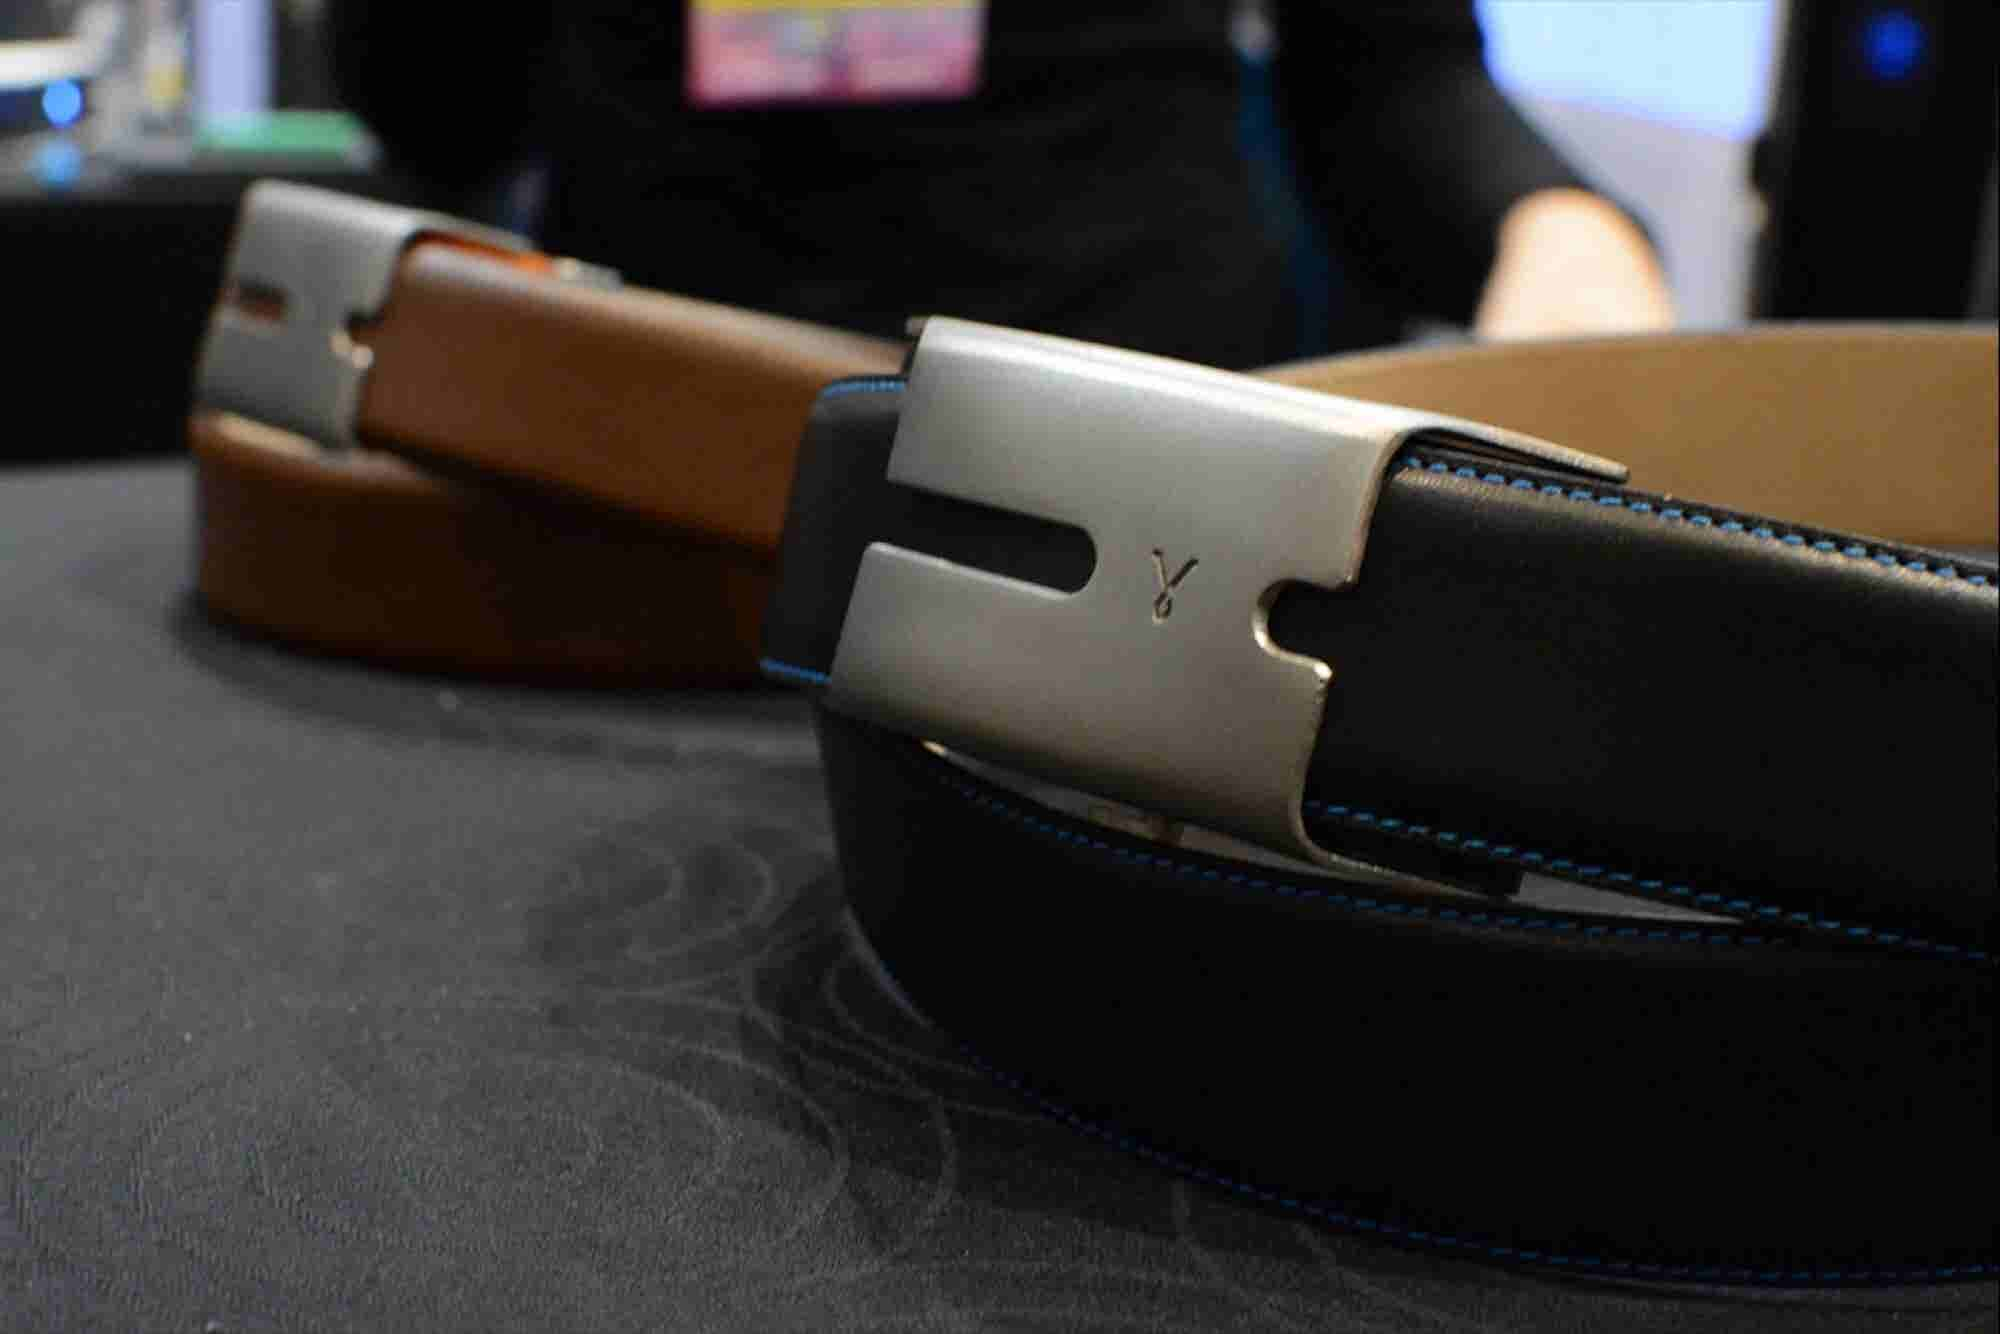 At CES, Belty's Upgrade Includes New Look and Vibration Functionality